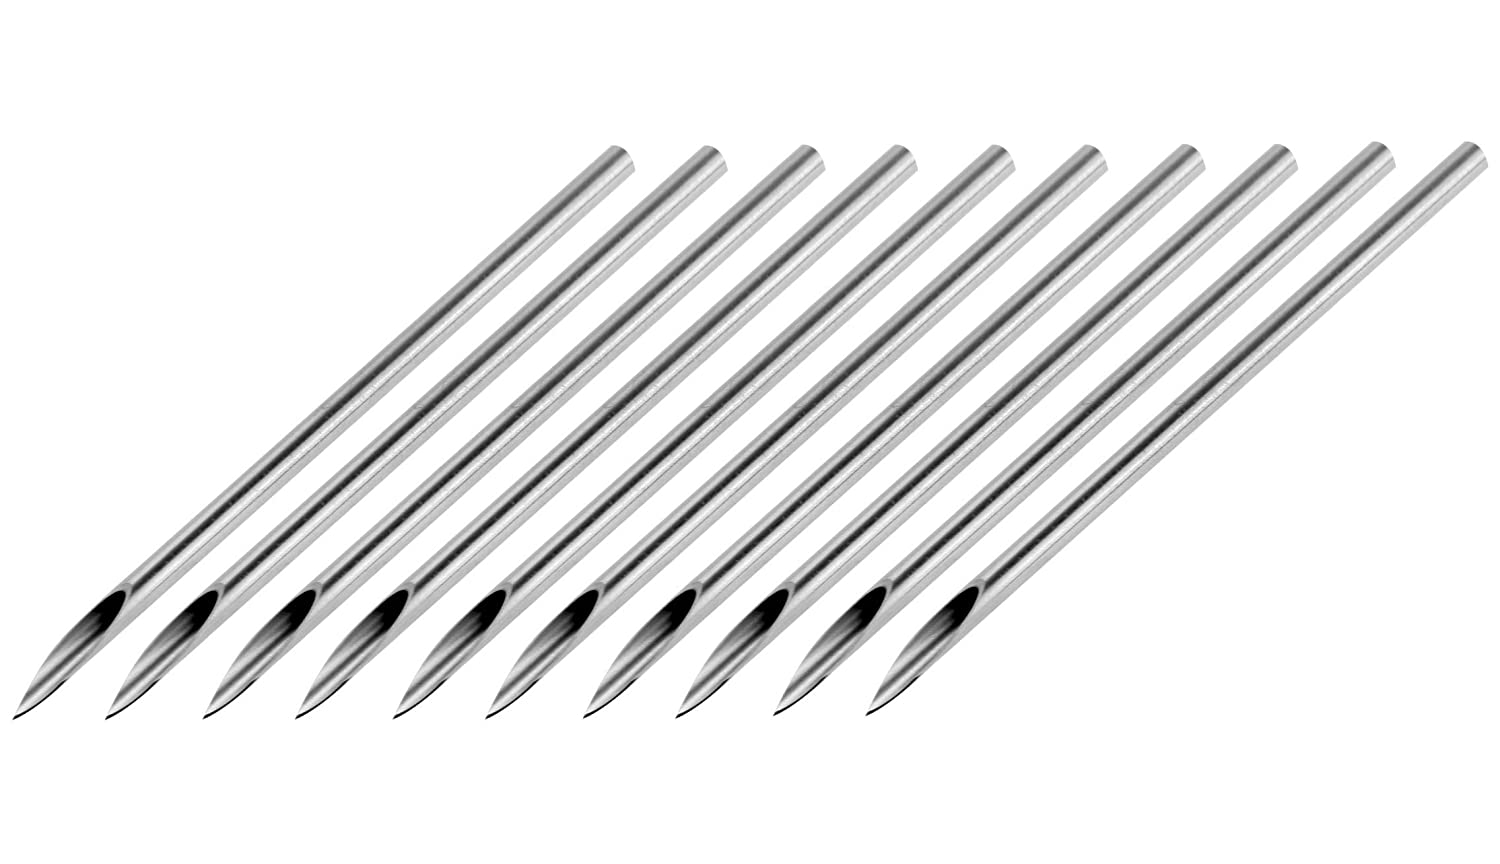 10 Sterilized Body Piercing Needles In 20 Gauge Amazoncouk Jewellery